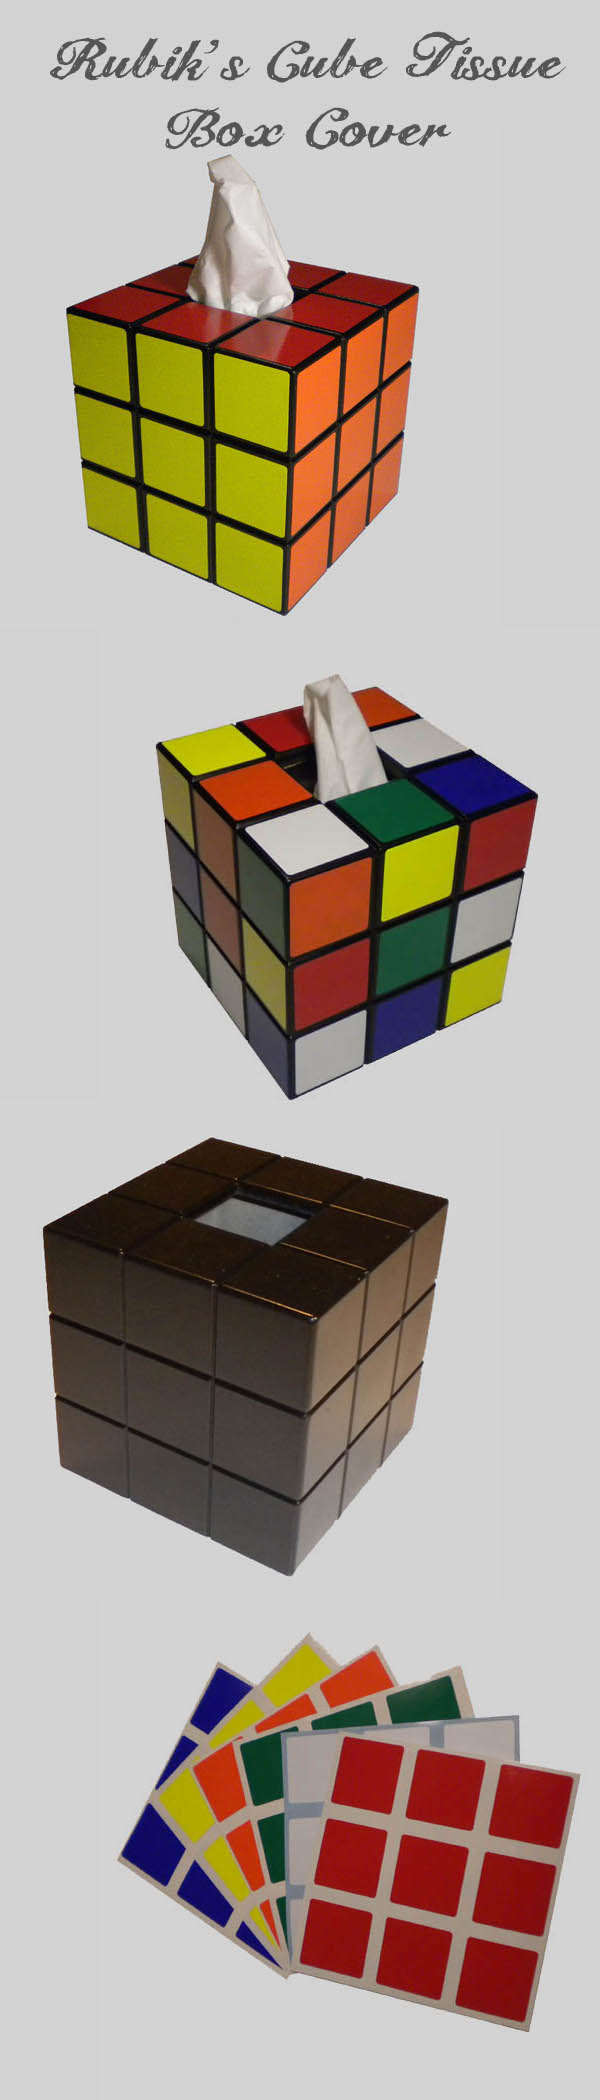 Rubiks cube tissue box cover handmade wooden bank that makes a great addition to your geek decor the bank is shipped black with loose stickers so it can